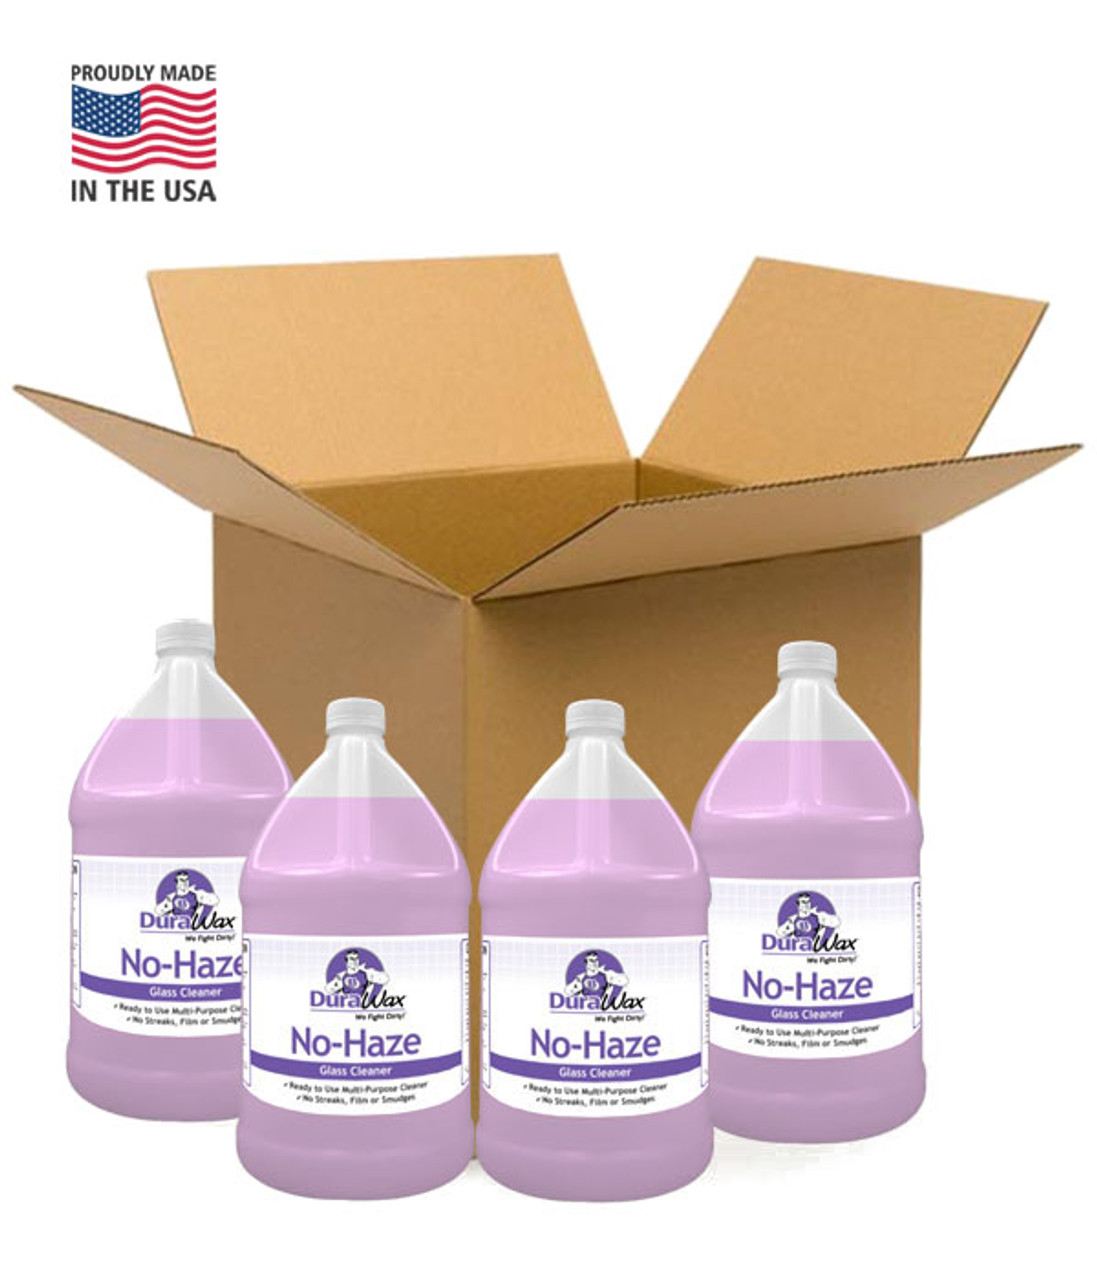 Buy a Case of 4 Gallons and Save!